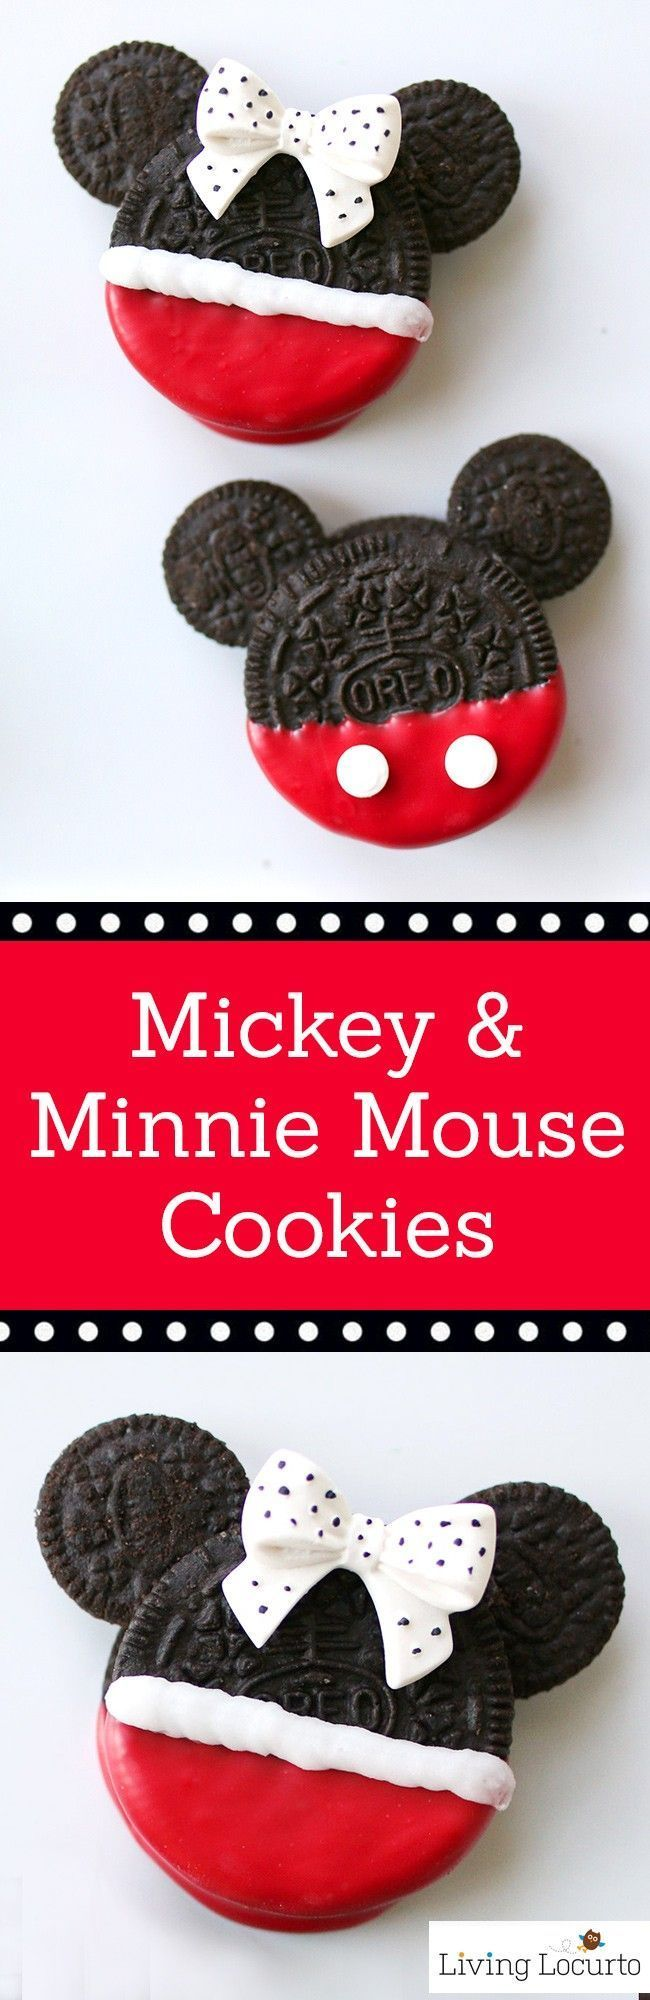 Cute Disney Themed No-Bake Cookies! Mickey and Minnie Mouse Oreo Cookies are perfect for a Disney Birthday Party or Everyday Fun Food Idea for Kids! LivingLocurto.com